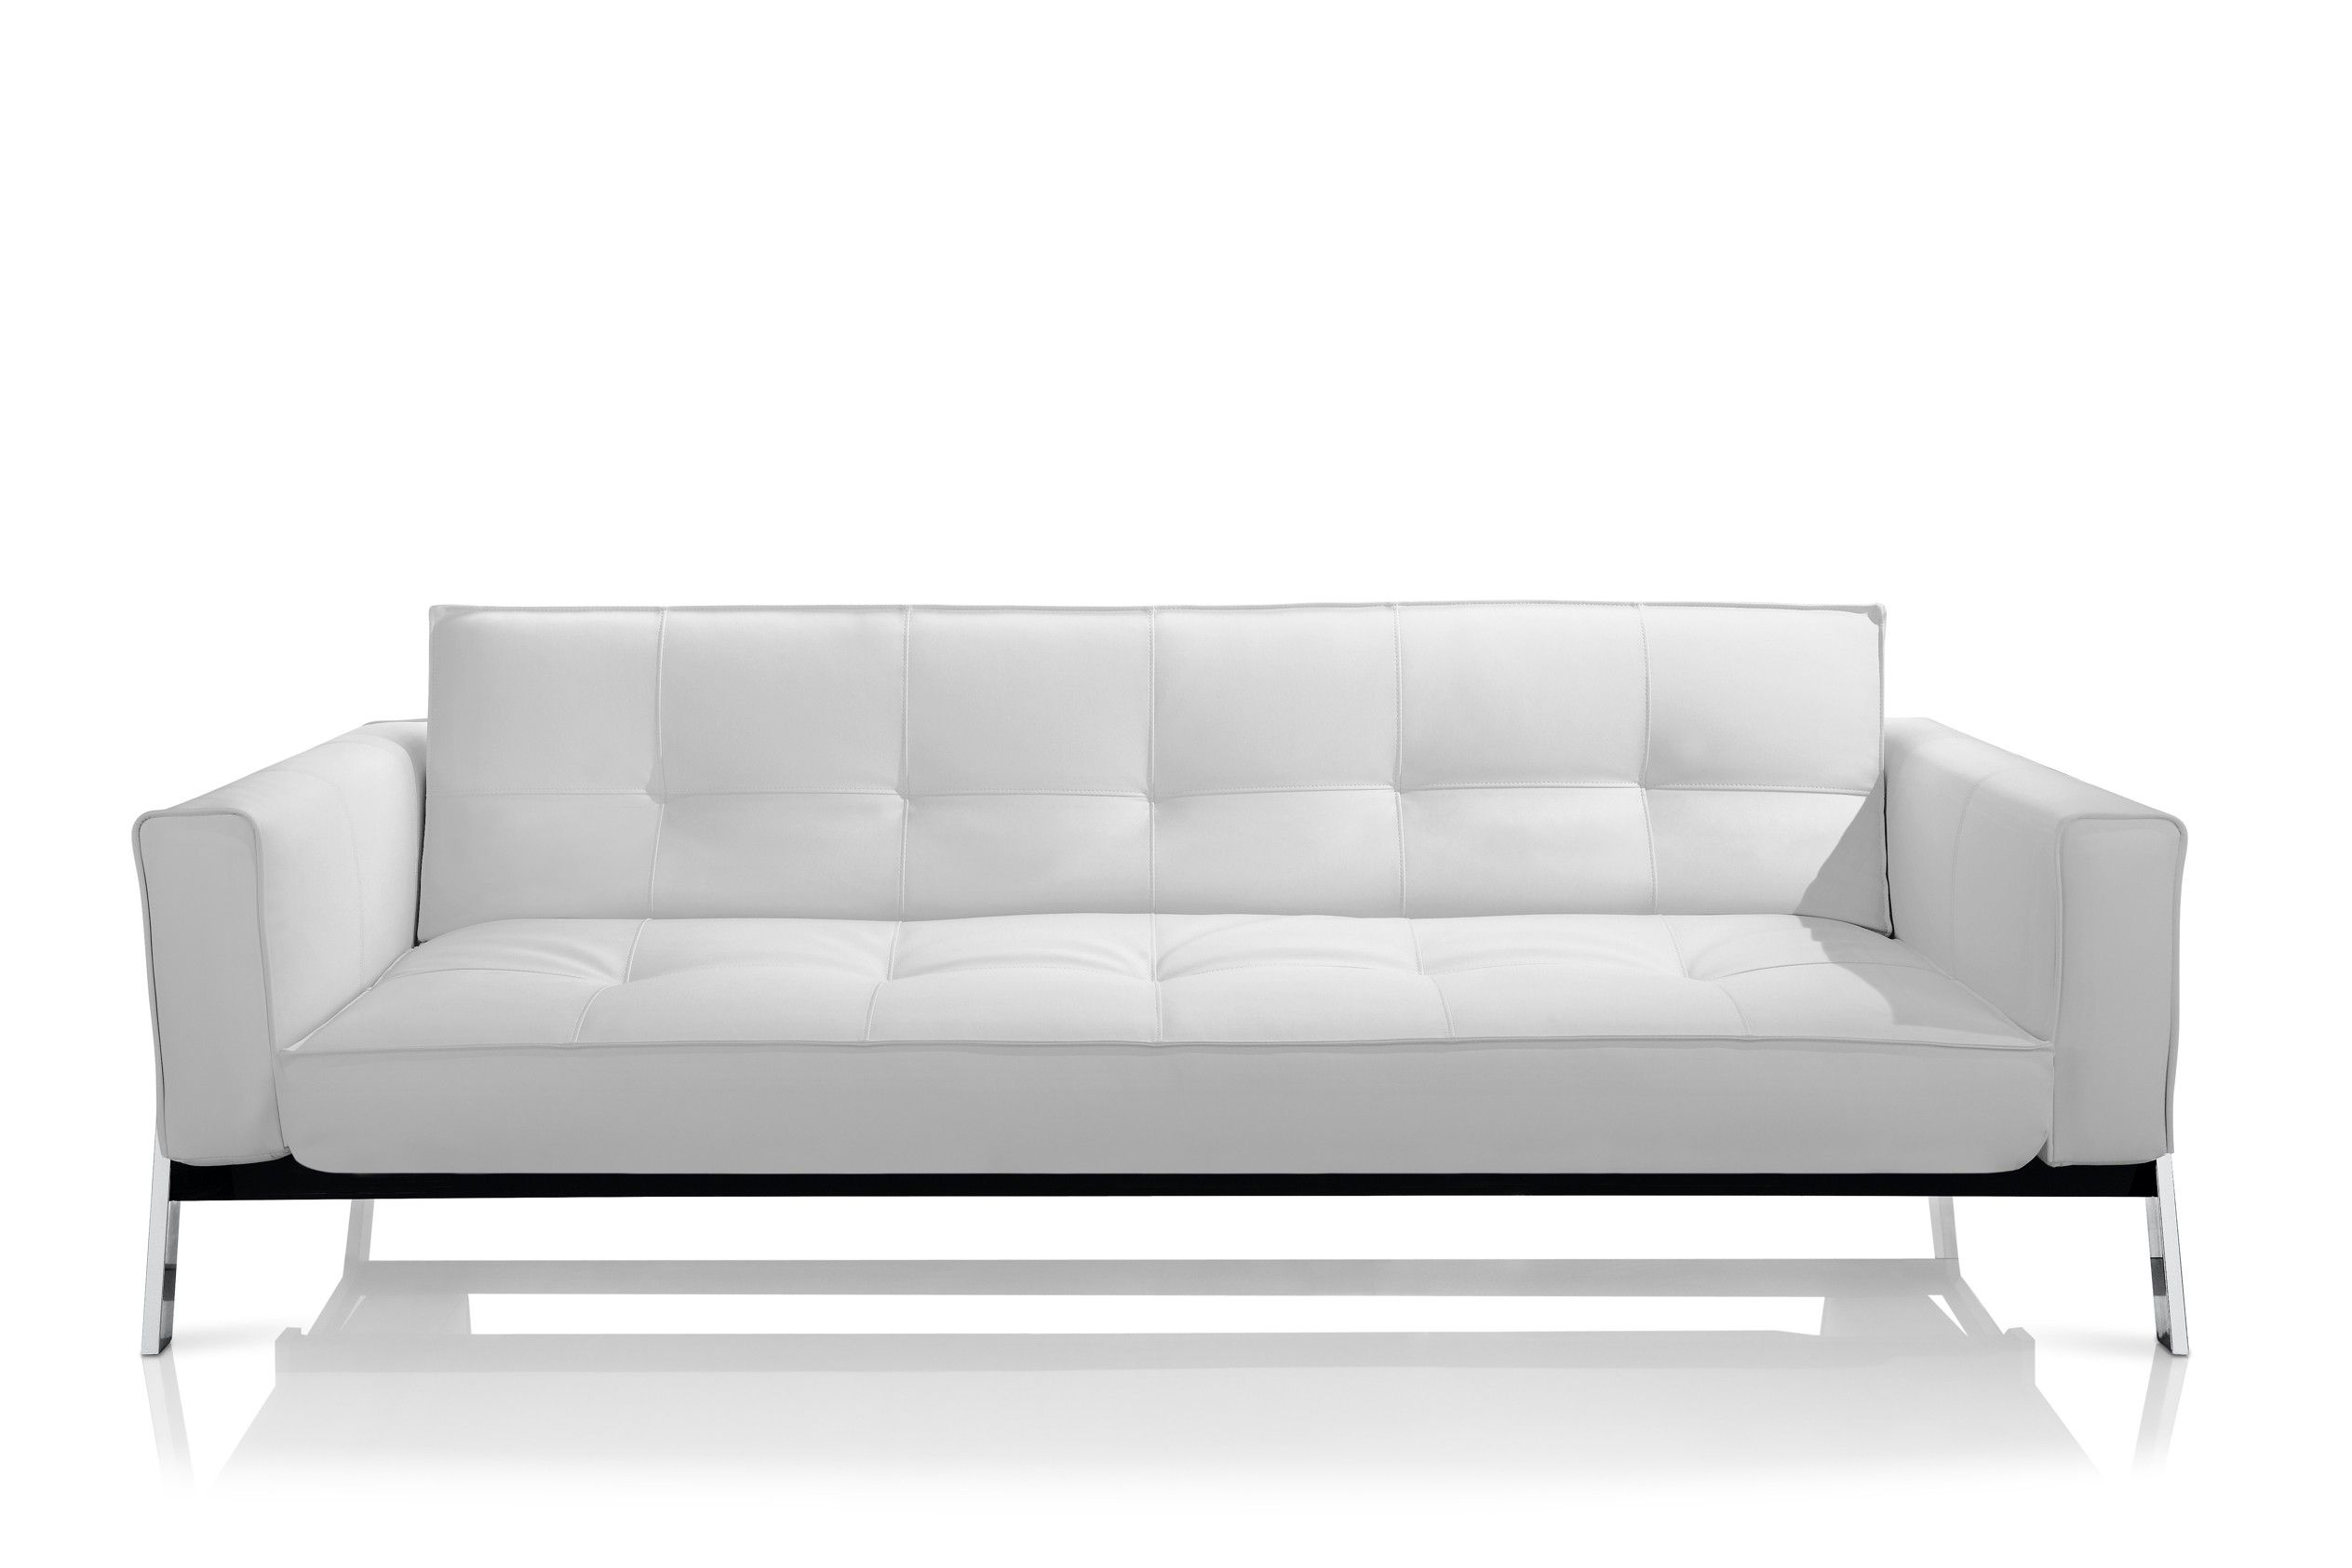 Charmant Awesome White Fabric Sofa , New White Fabric Sofa 30 Sofas And Couches Set  With White